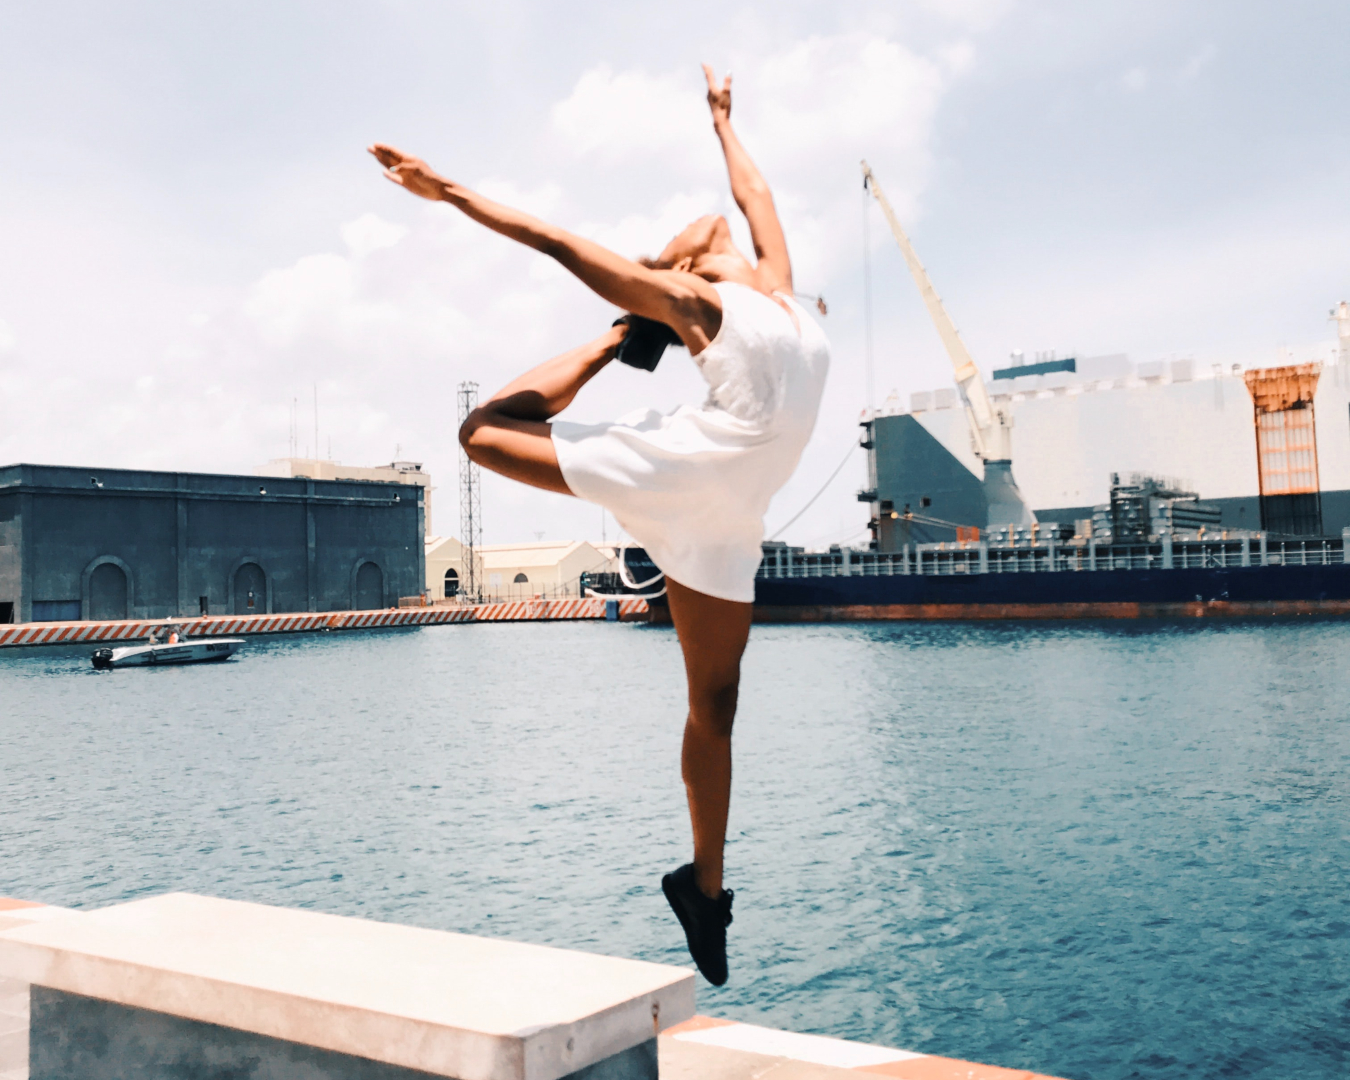 Woman jumping in mid-air with arms high, next to a city port